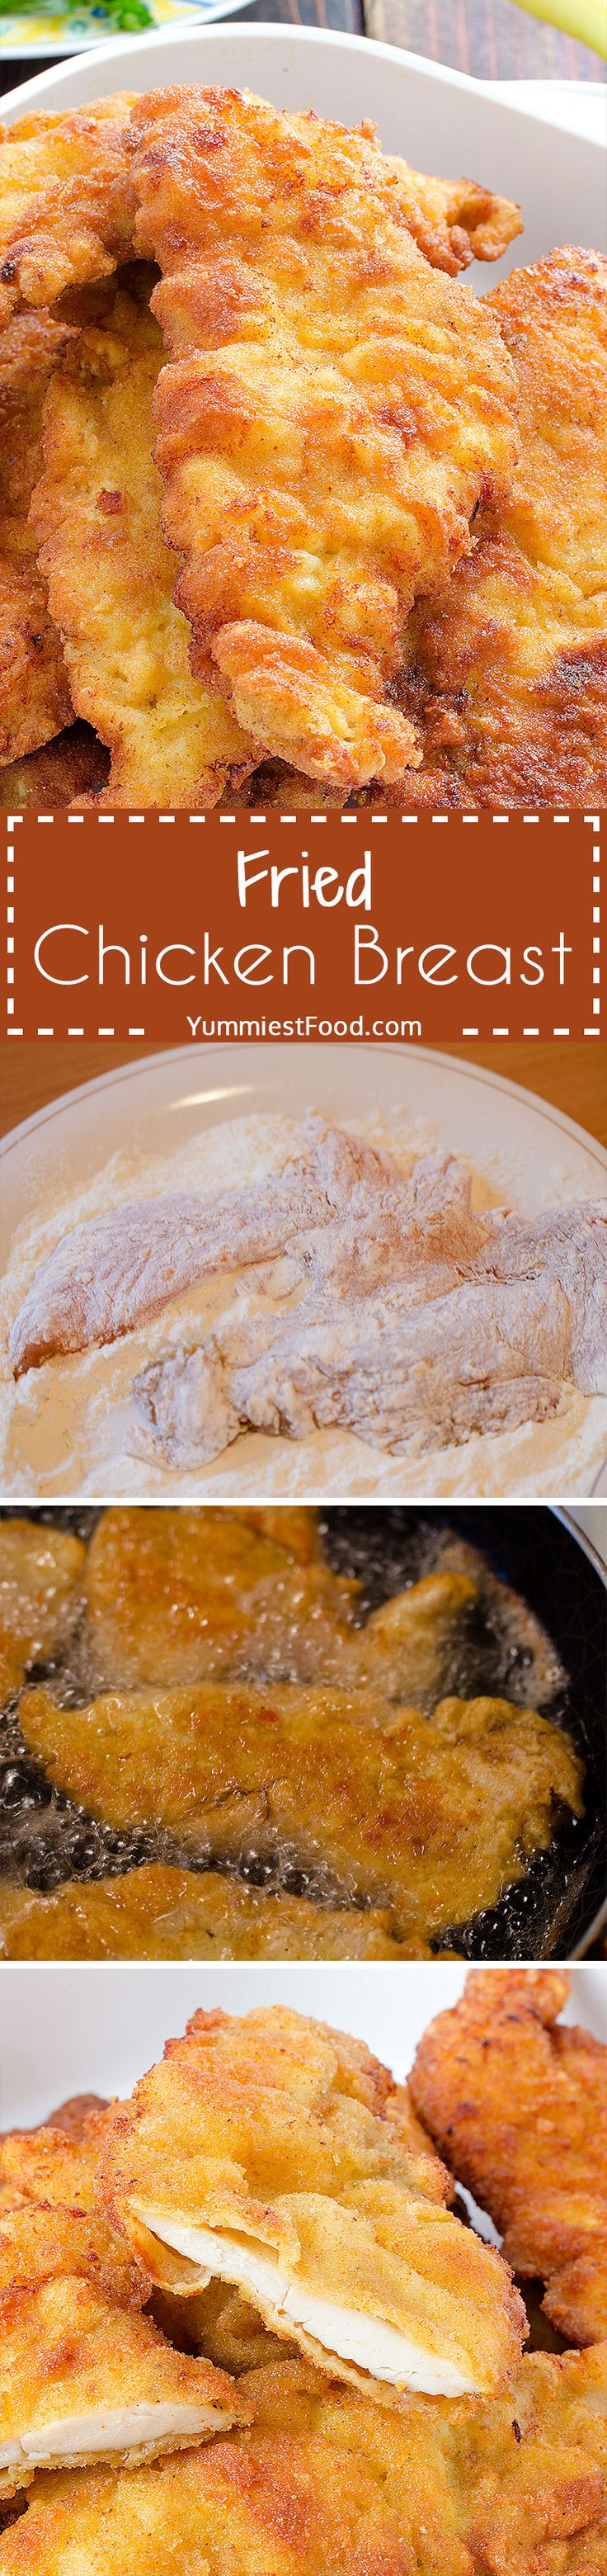 Fried Chicken Breast - Very interesting and easy way of preparing chicken breast, and very soft and delicious!